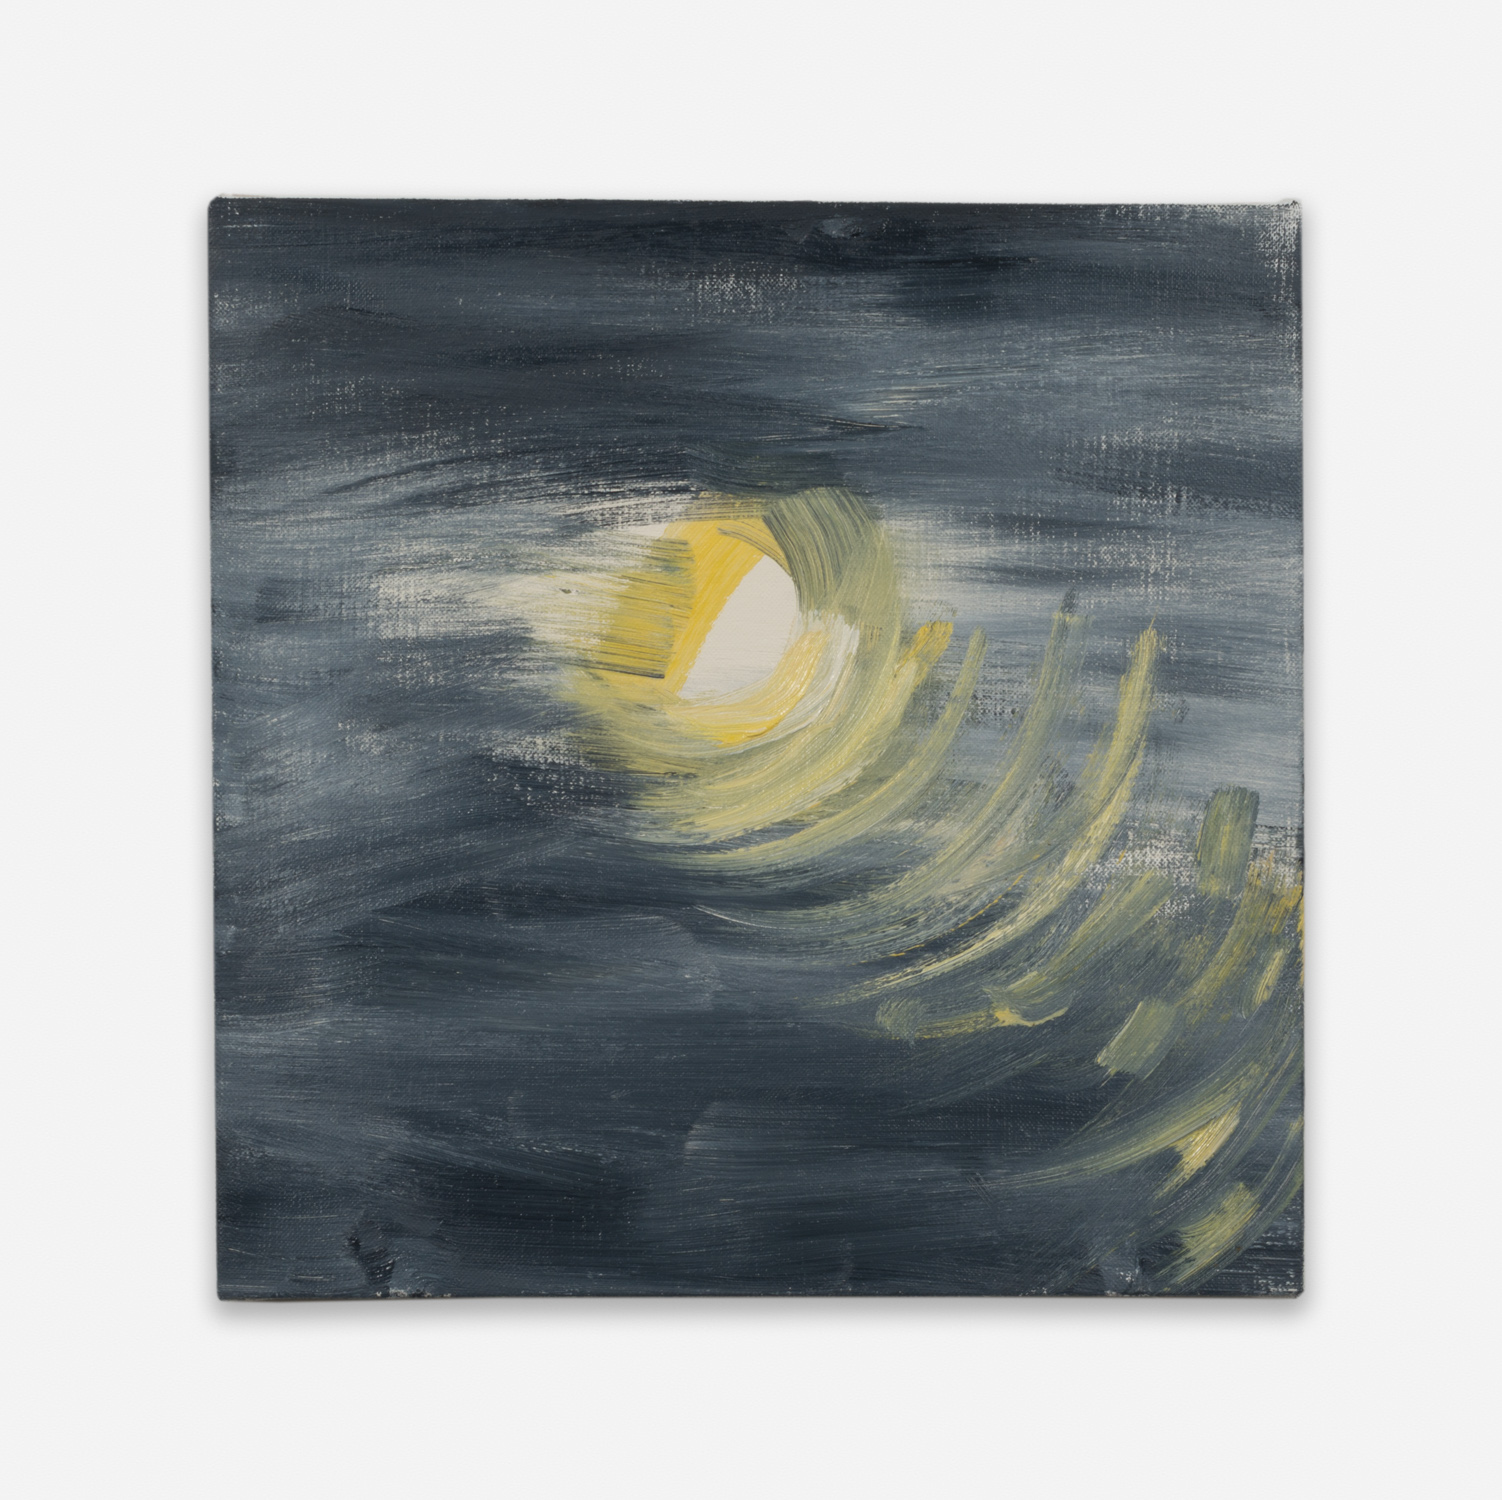 Ann Craven  Moon (Guilford, 8-25-12, 10:48PM), 2012  2012 Oil on linen 14h x 14w in AC130